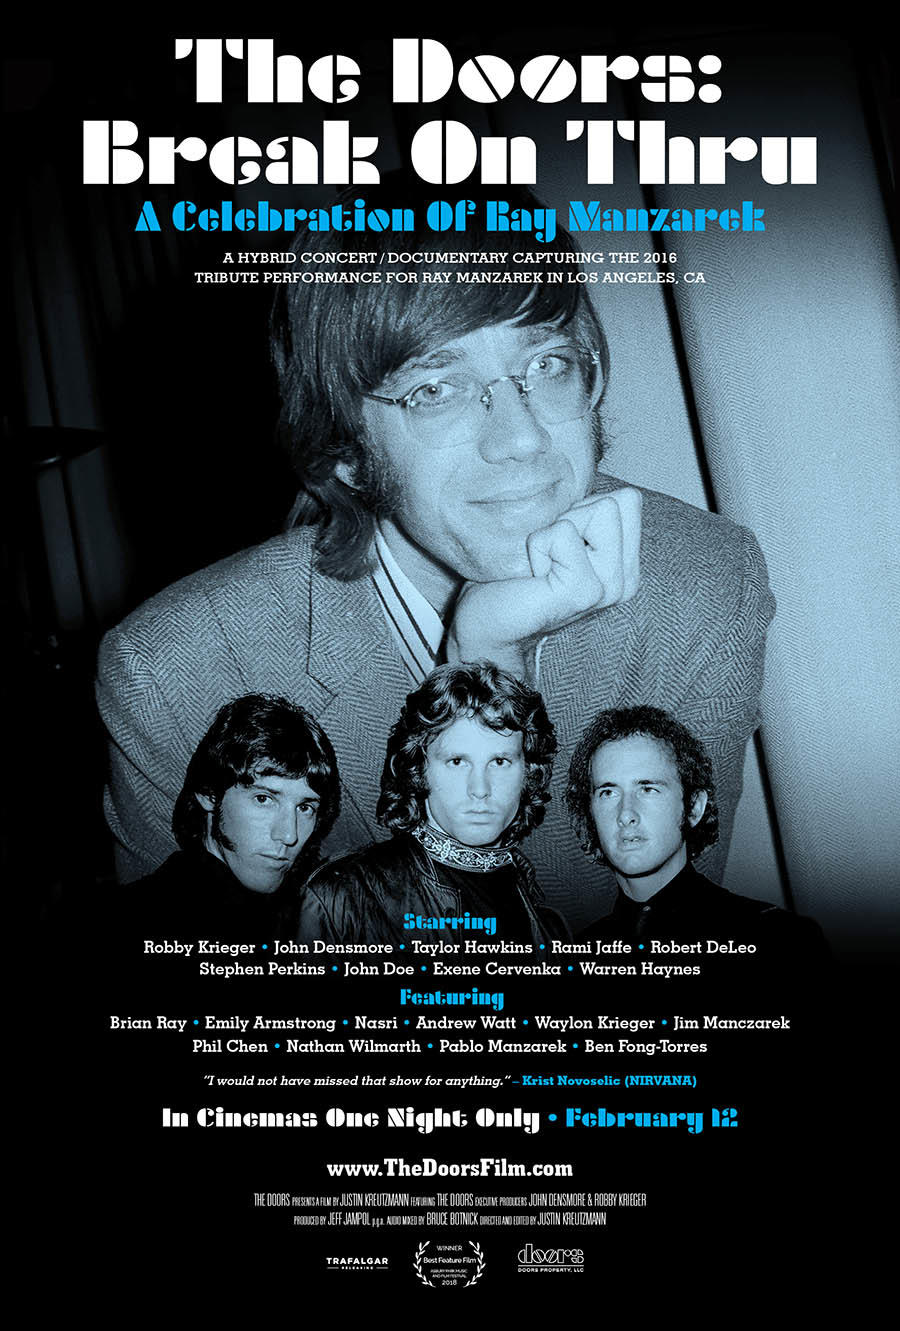 Break On Thru: A Celebration of Ray Manzarek and The Doors poster art